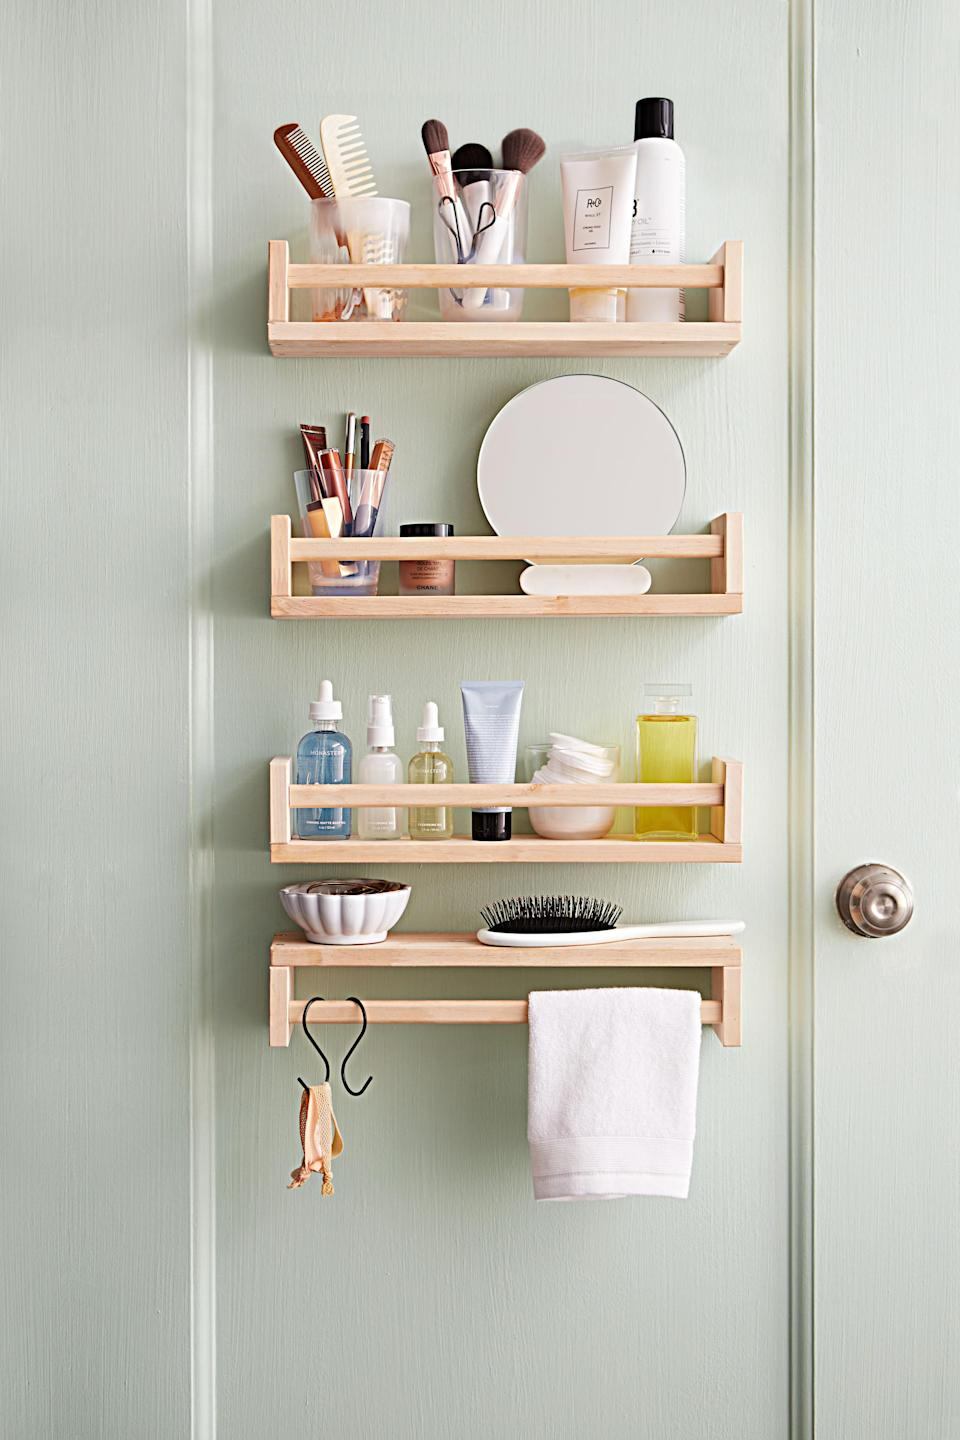 "<p>Carve out a space just for you by mounting spice racks on the wall. You can even invert one of these narrow shelves and use it as a towel-bar-slash-accessories-perch; just slip out the two keyhole-shaped brackets on the back, flip them, pop them back in, and hang it upside down. Behold: Your very own stress-free dressing station, with no one knocking to come in.</p> <p><strong><em>Shop Now:</em></strong><em> IKEA Bekväm Spice Racks, $5 each, <a href=""https://www.ikea.com/us/en/p/bekvaem-spice-rack-birch-40070185/"" rel=""nofollow noopener"" target=""_blank"" data-ylk=""slk:ikea.com"" class=""link rapid-noclick-resp"">ikea.com</a></em><em>.</em></p>"